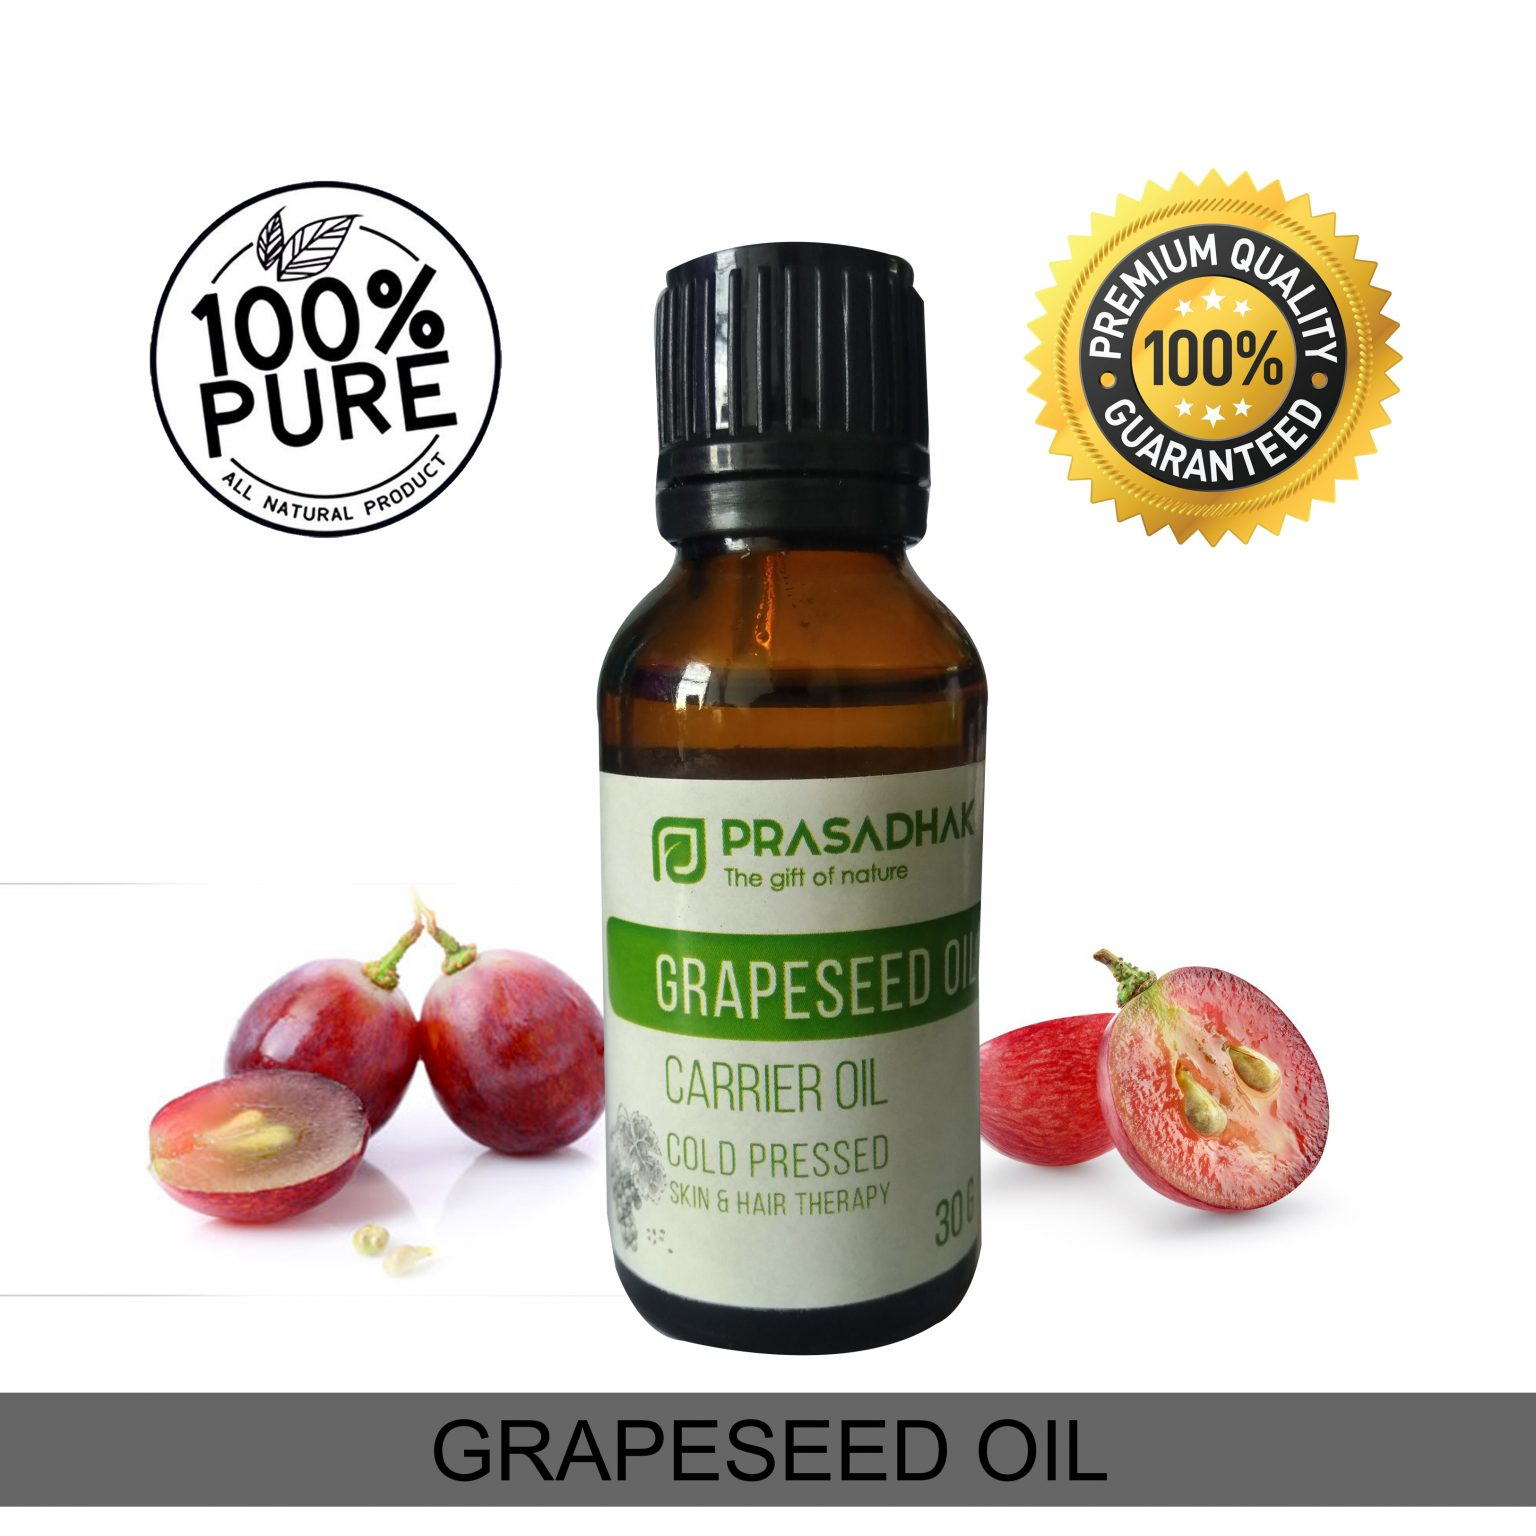 Cold-pressed Grapeseed Oil